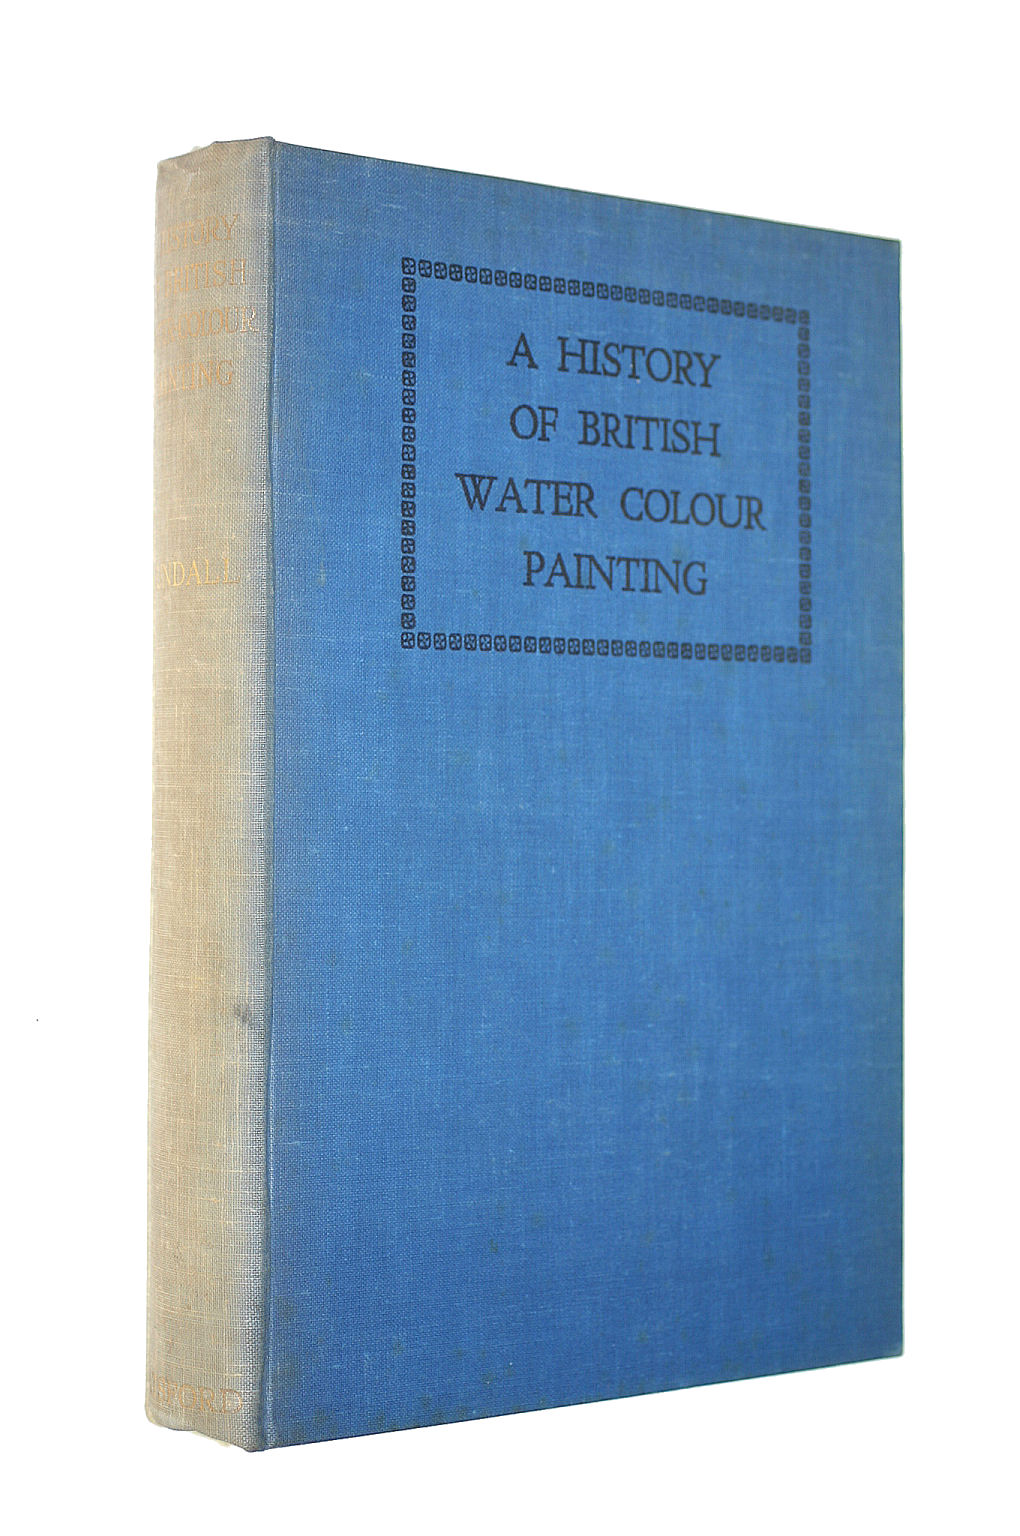 Image for A HISTORY OF BRITISH WATER COLOUR PAINTING